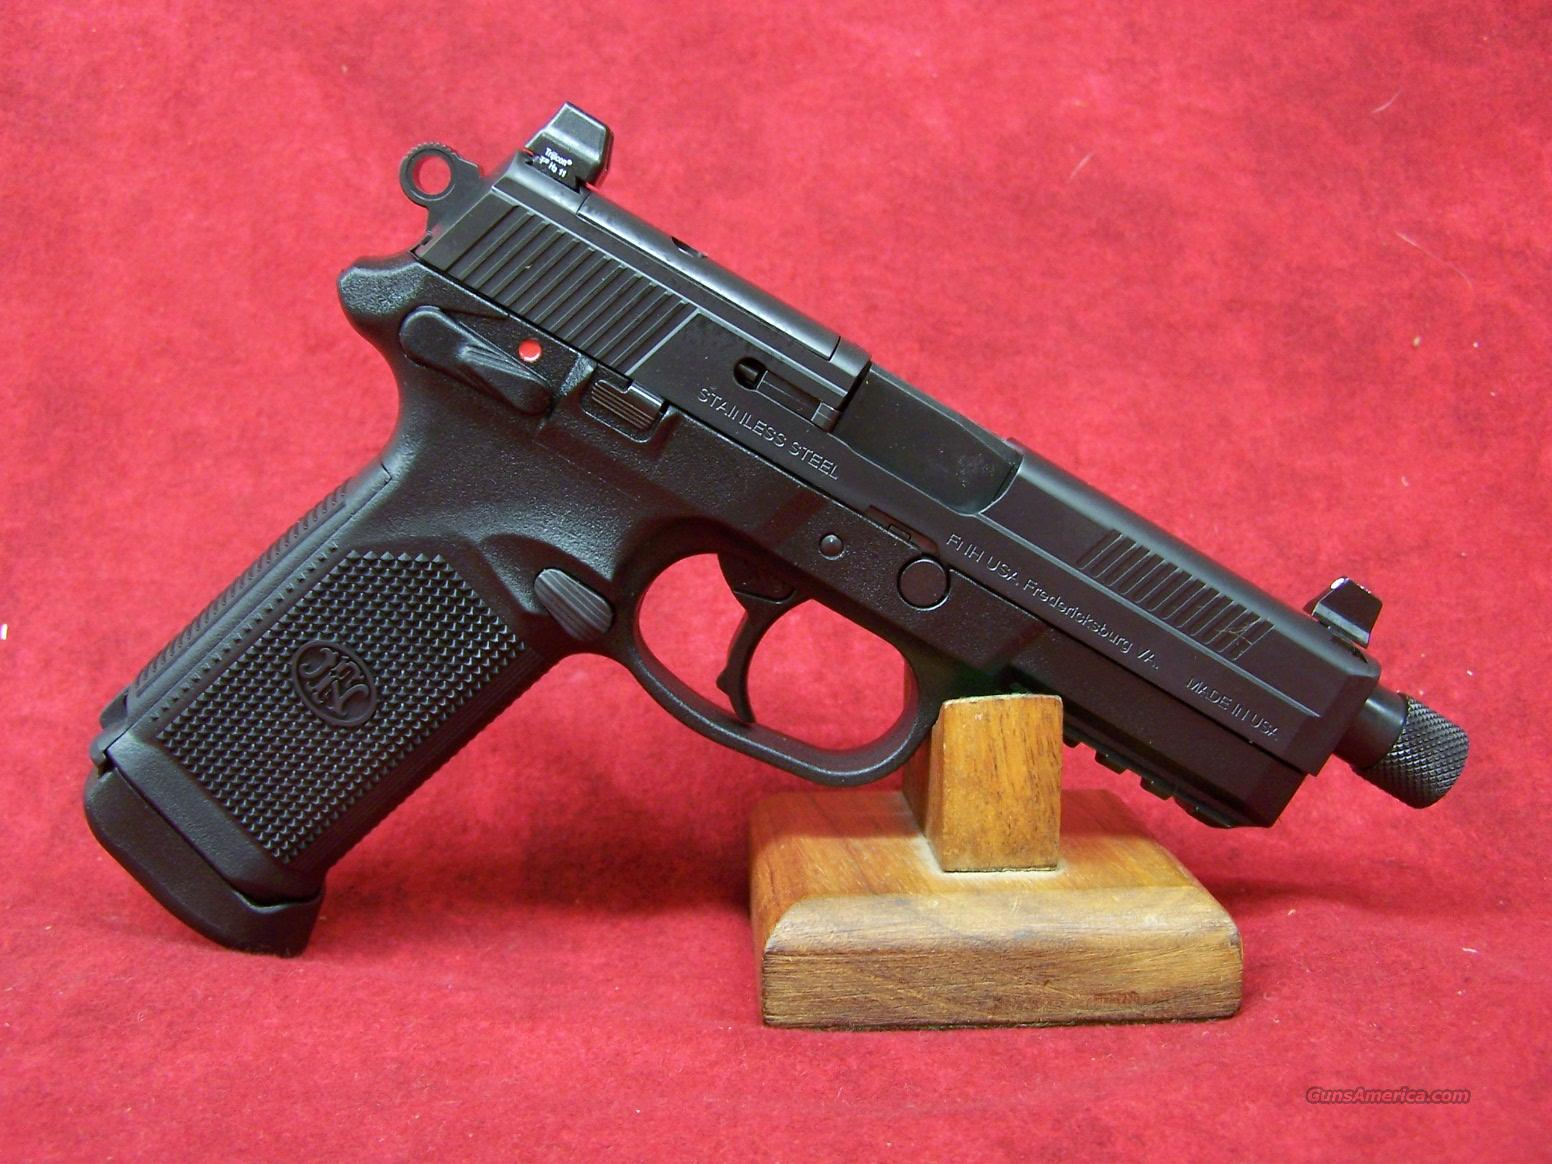 FNH FNP-45 Tactical Double Action/Single Action .45 ACP(66810)  Guns > Pistols > FNH - Fabrique Nationale (FN) Pistols > FNP